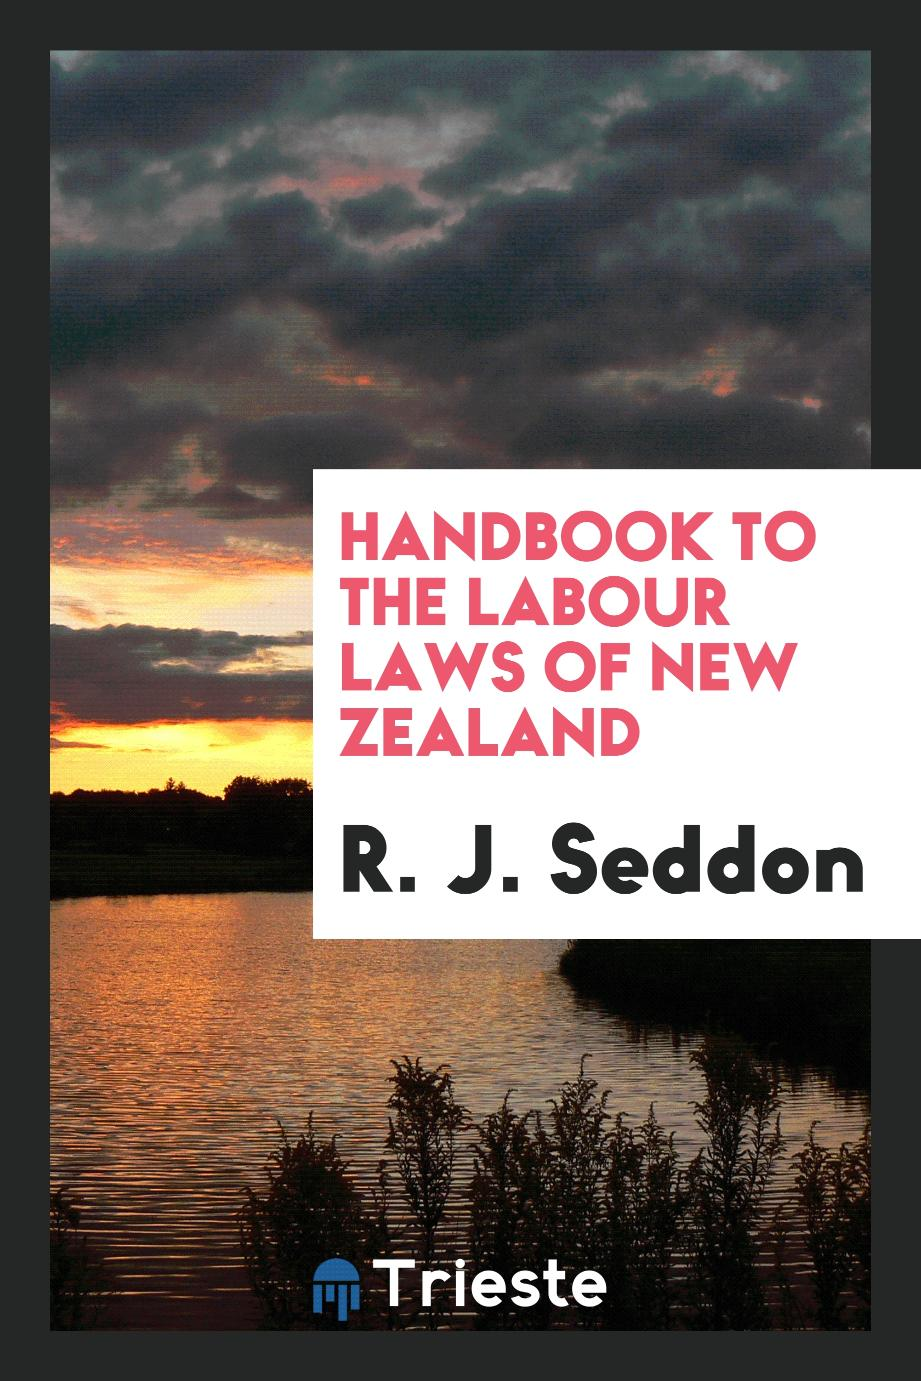 Handbook to the Labour Laws of New Zealand